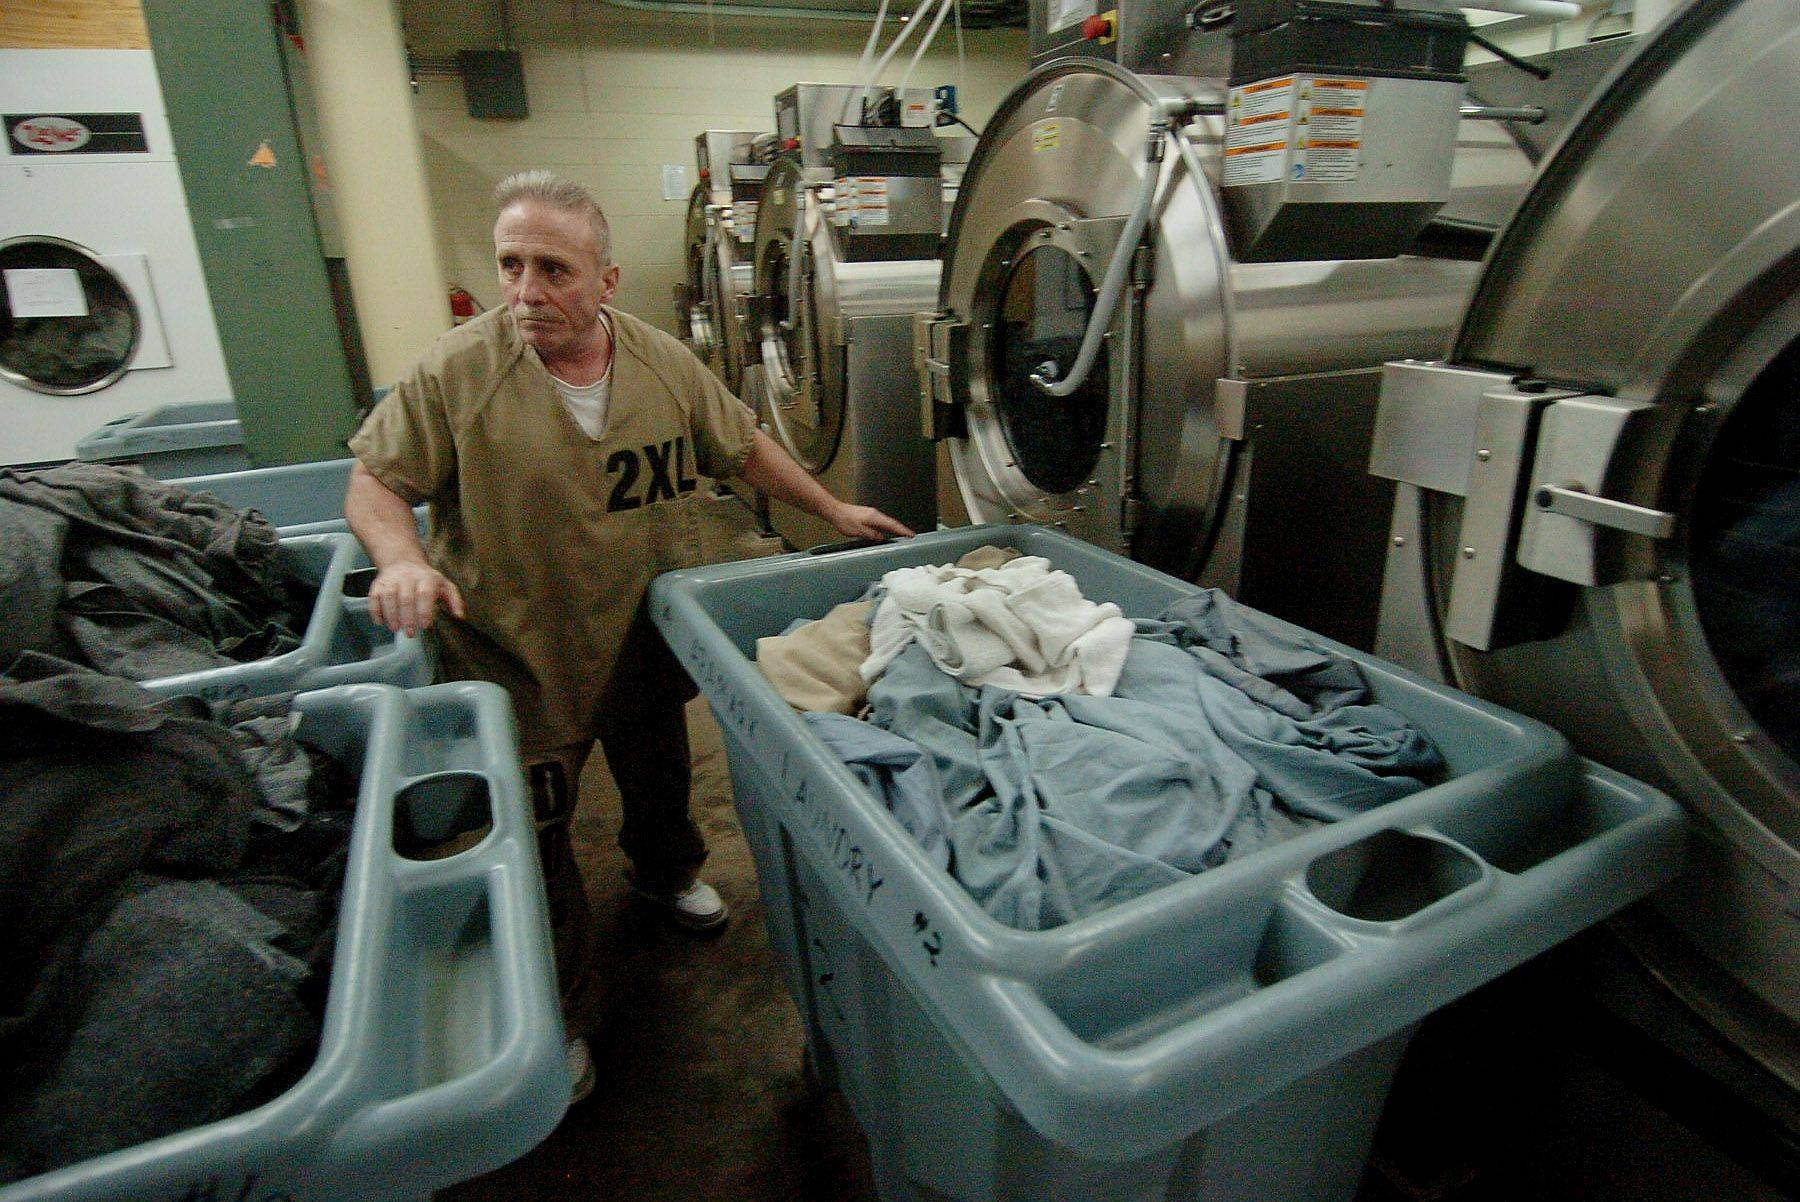 U.S. Marines veteran Carmen Verlotta of Chicago moves bins of laundry in the prison laundry room in the basement of Cook County Jail as part of a special program for veterans charged with felonies.